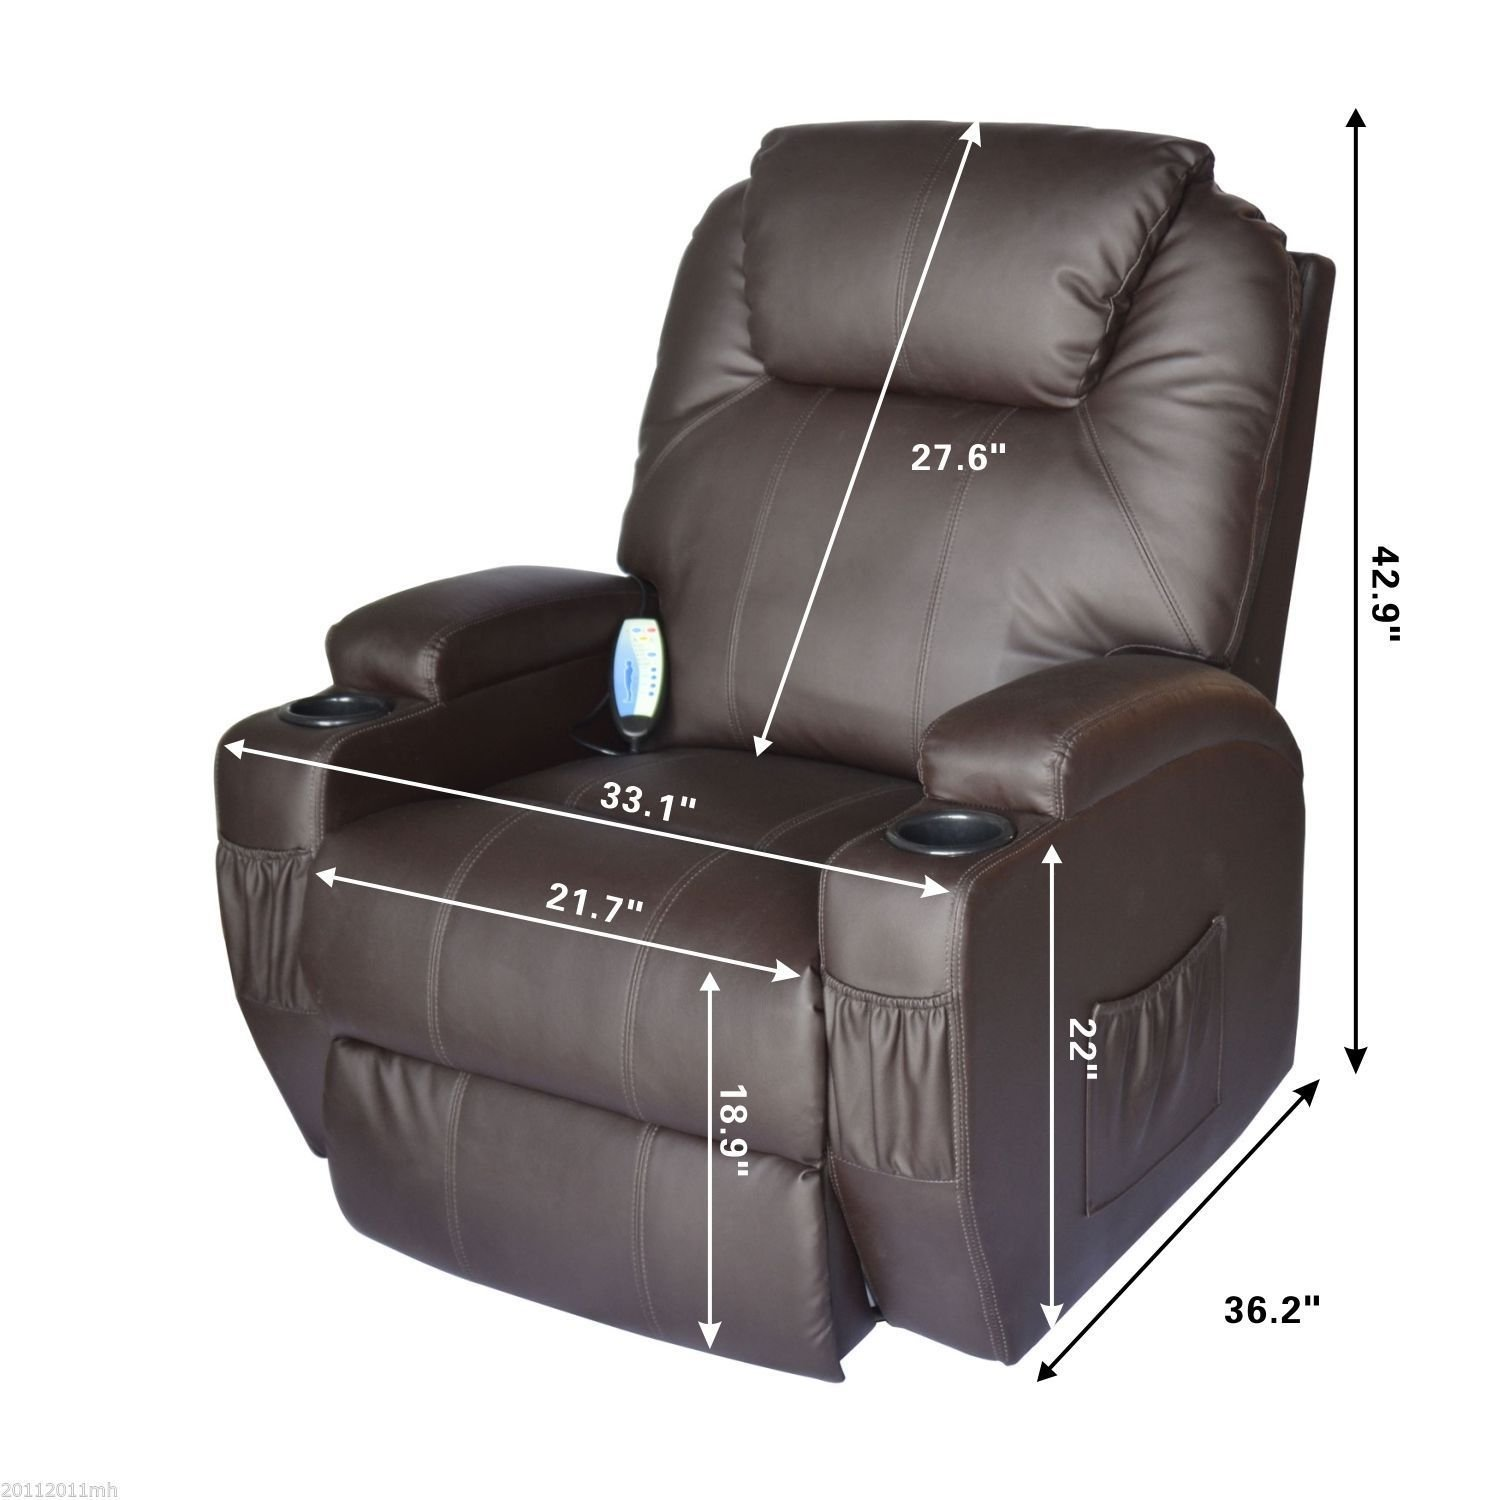 Amazon Hom Massage Heated PU Leather 360 Degree Swivel